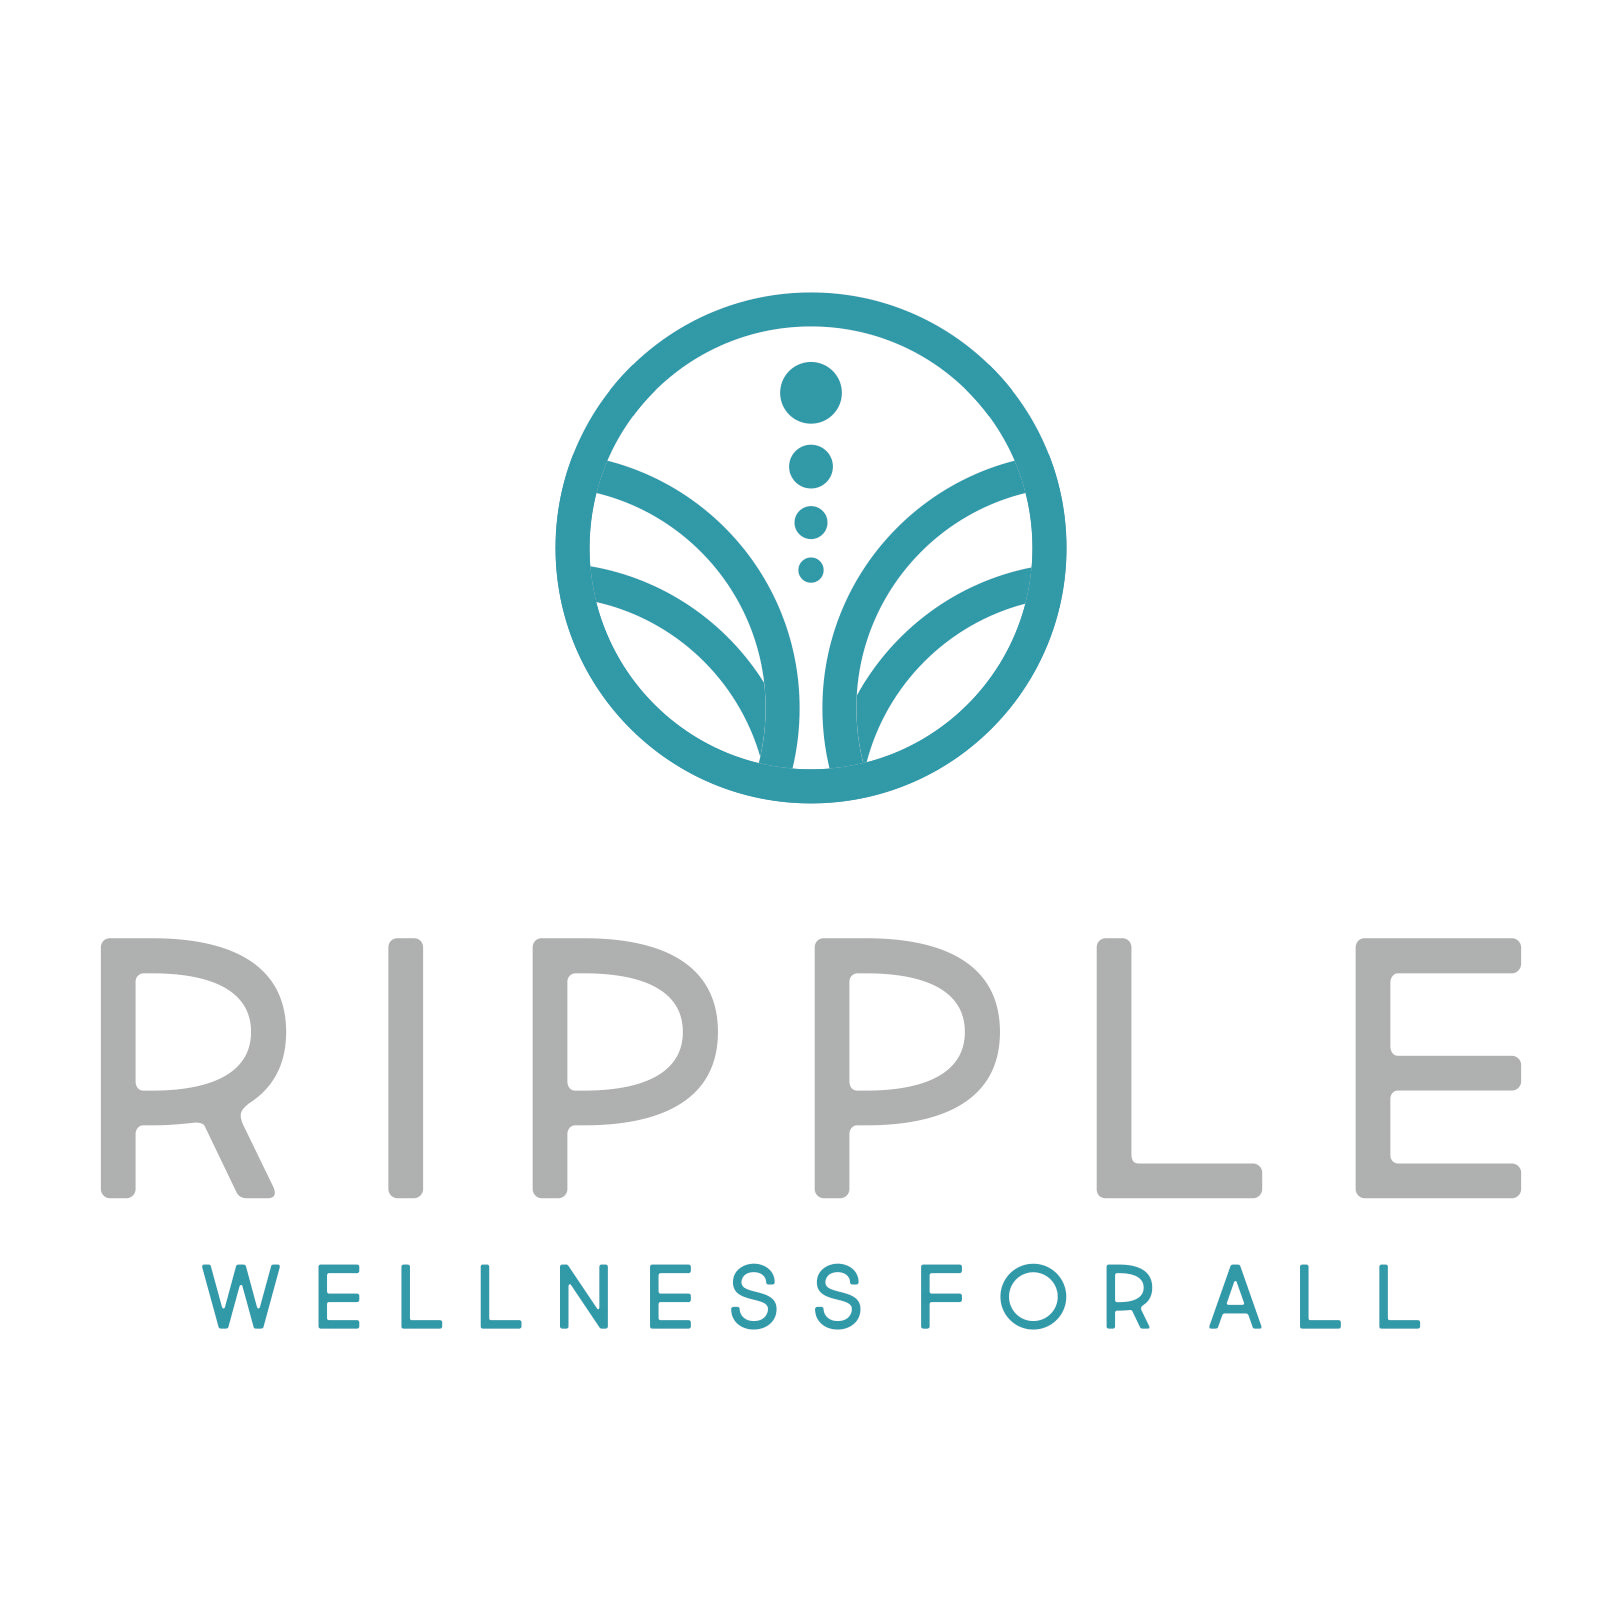 Ripple Wellness